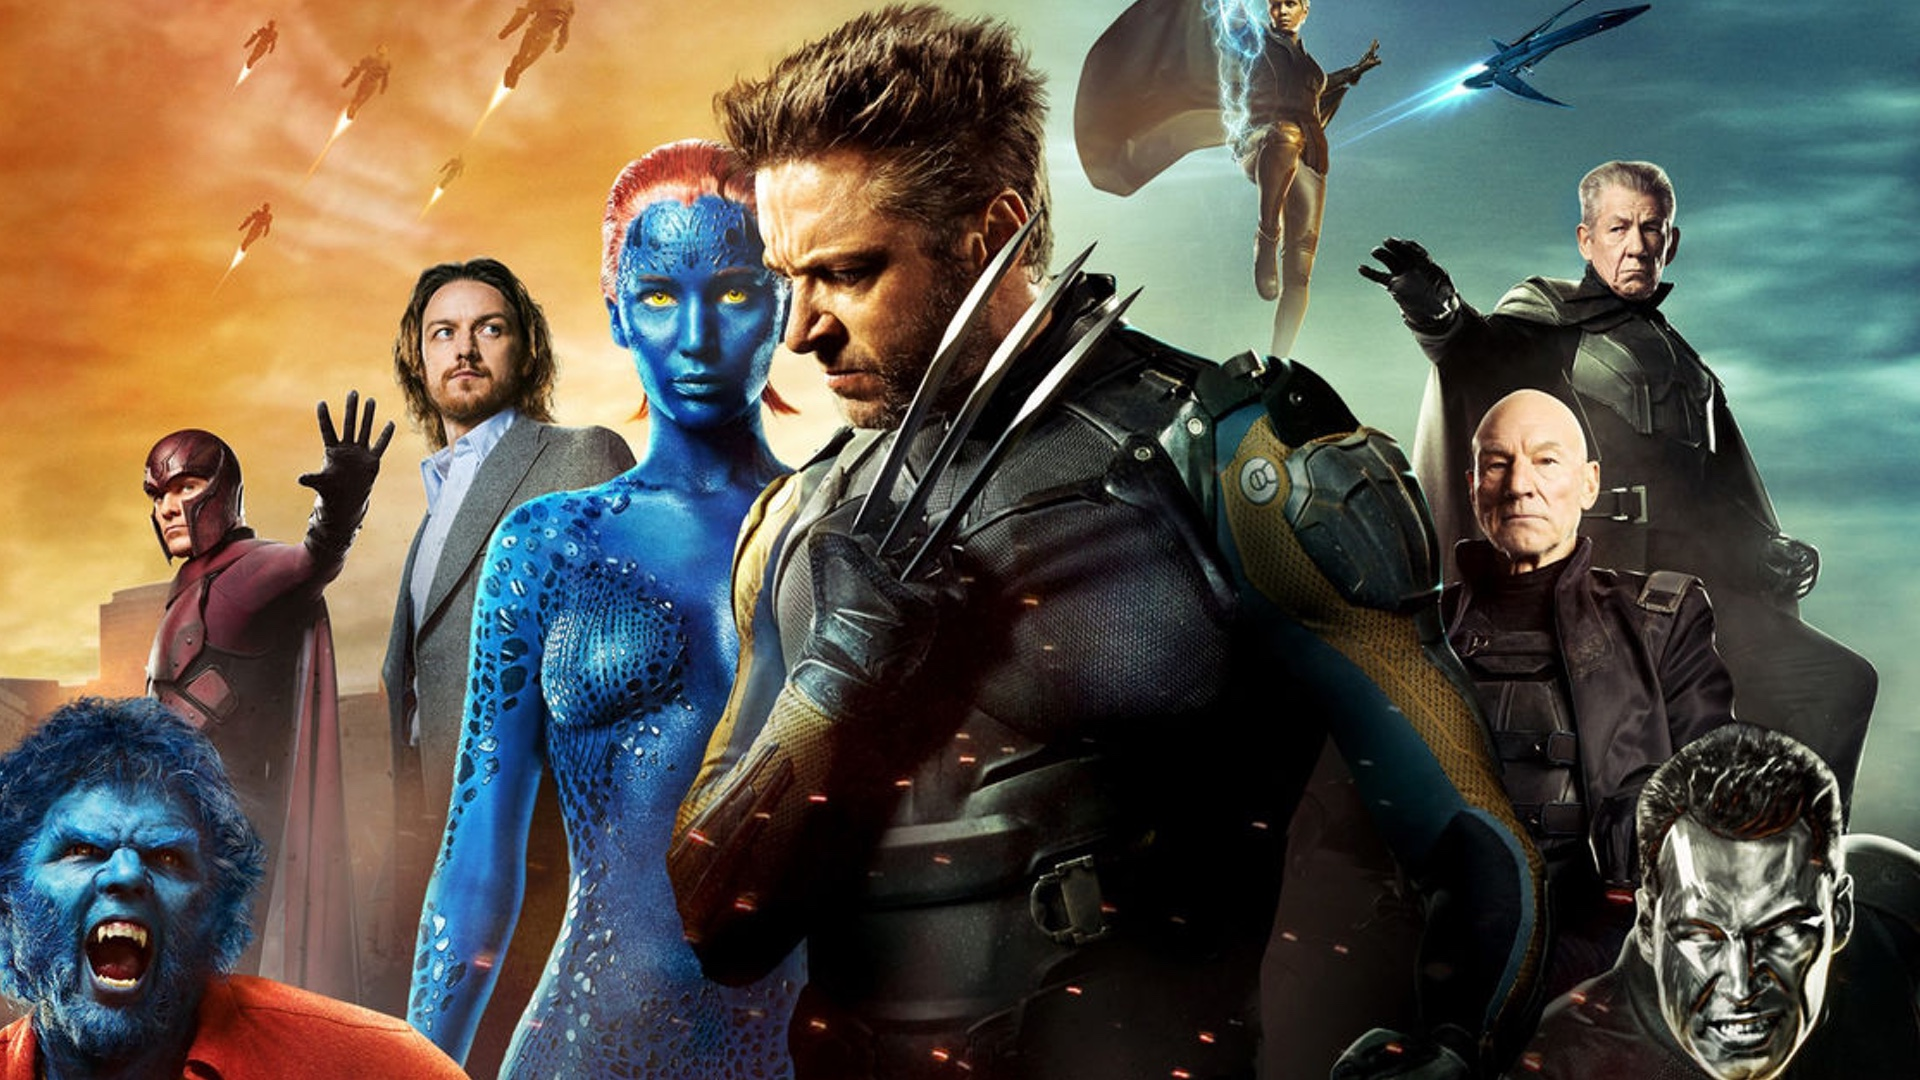 kevin-feige-on-when-marvel-studios-will-start-playing-with-the-x-men-social.jpg